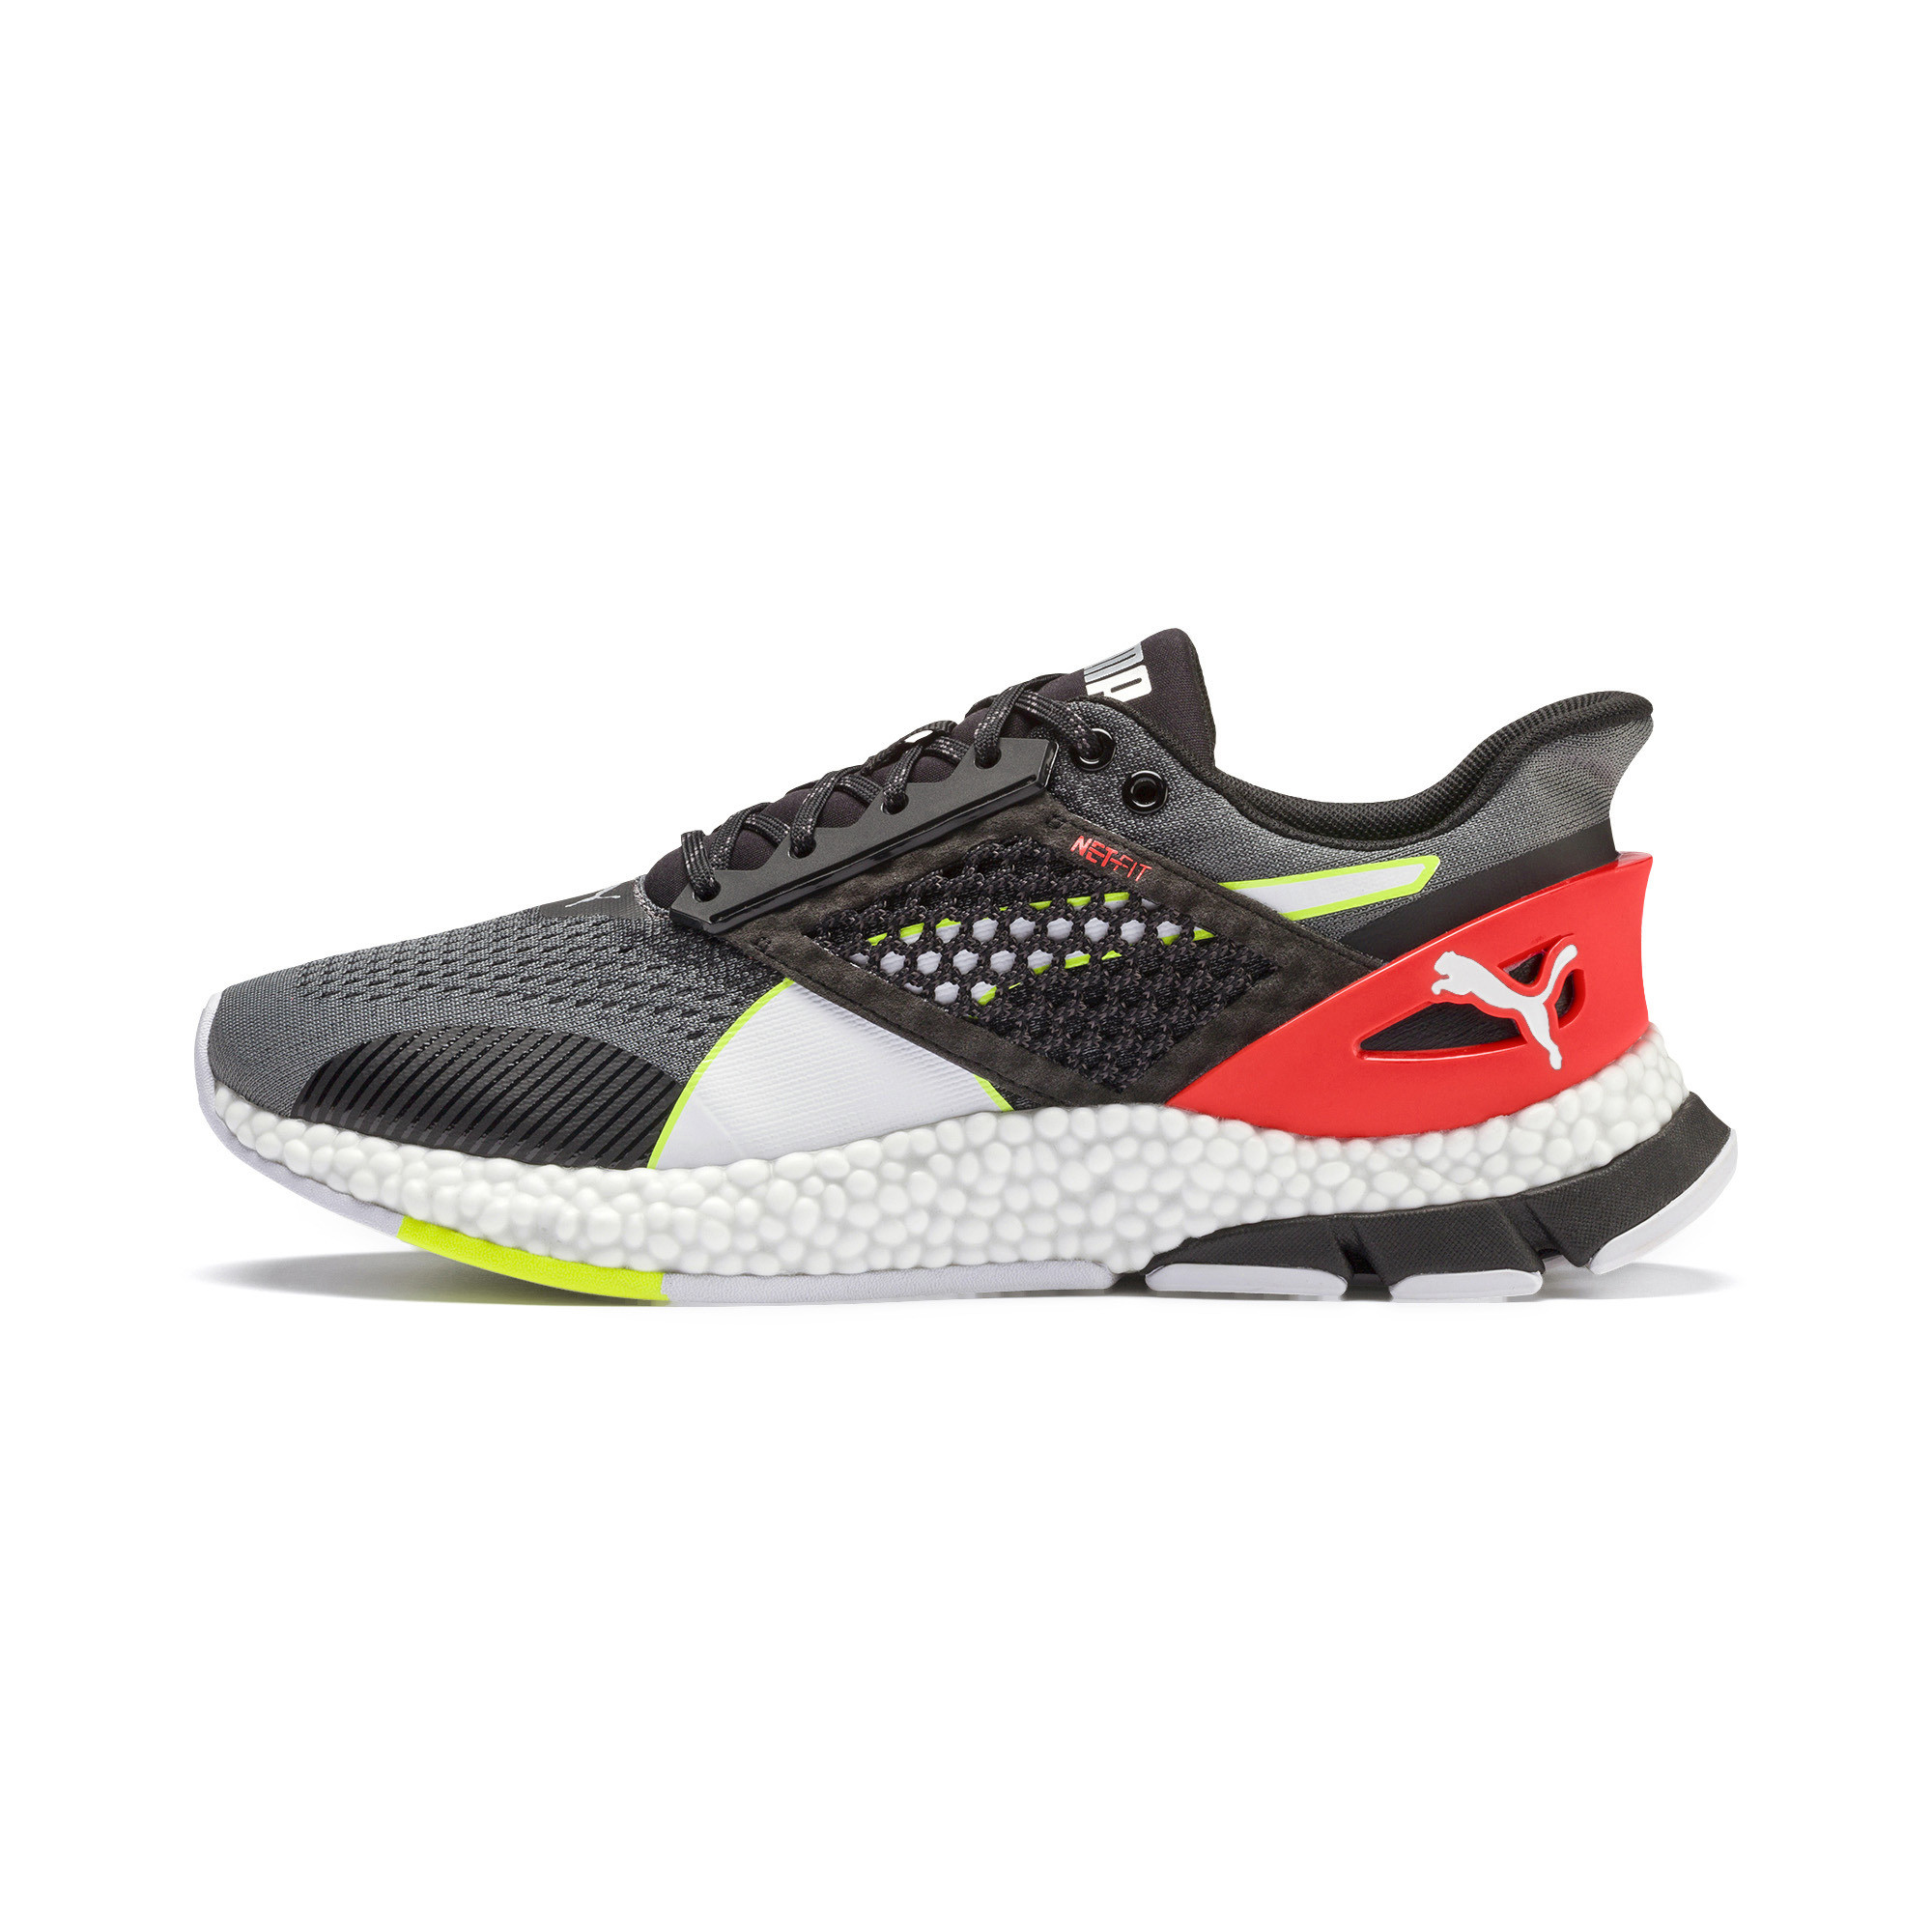 PUMA-Men-039-s-HYBRID-Astro-Running-Shoes thumbnail 17